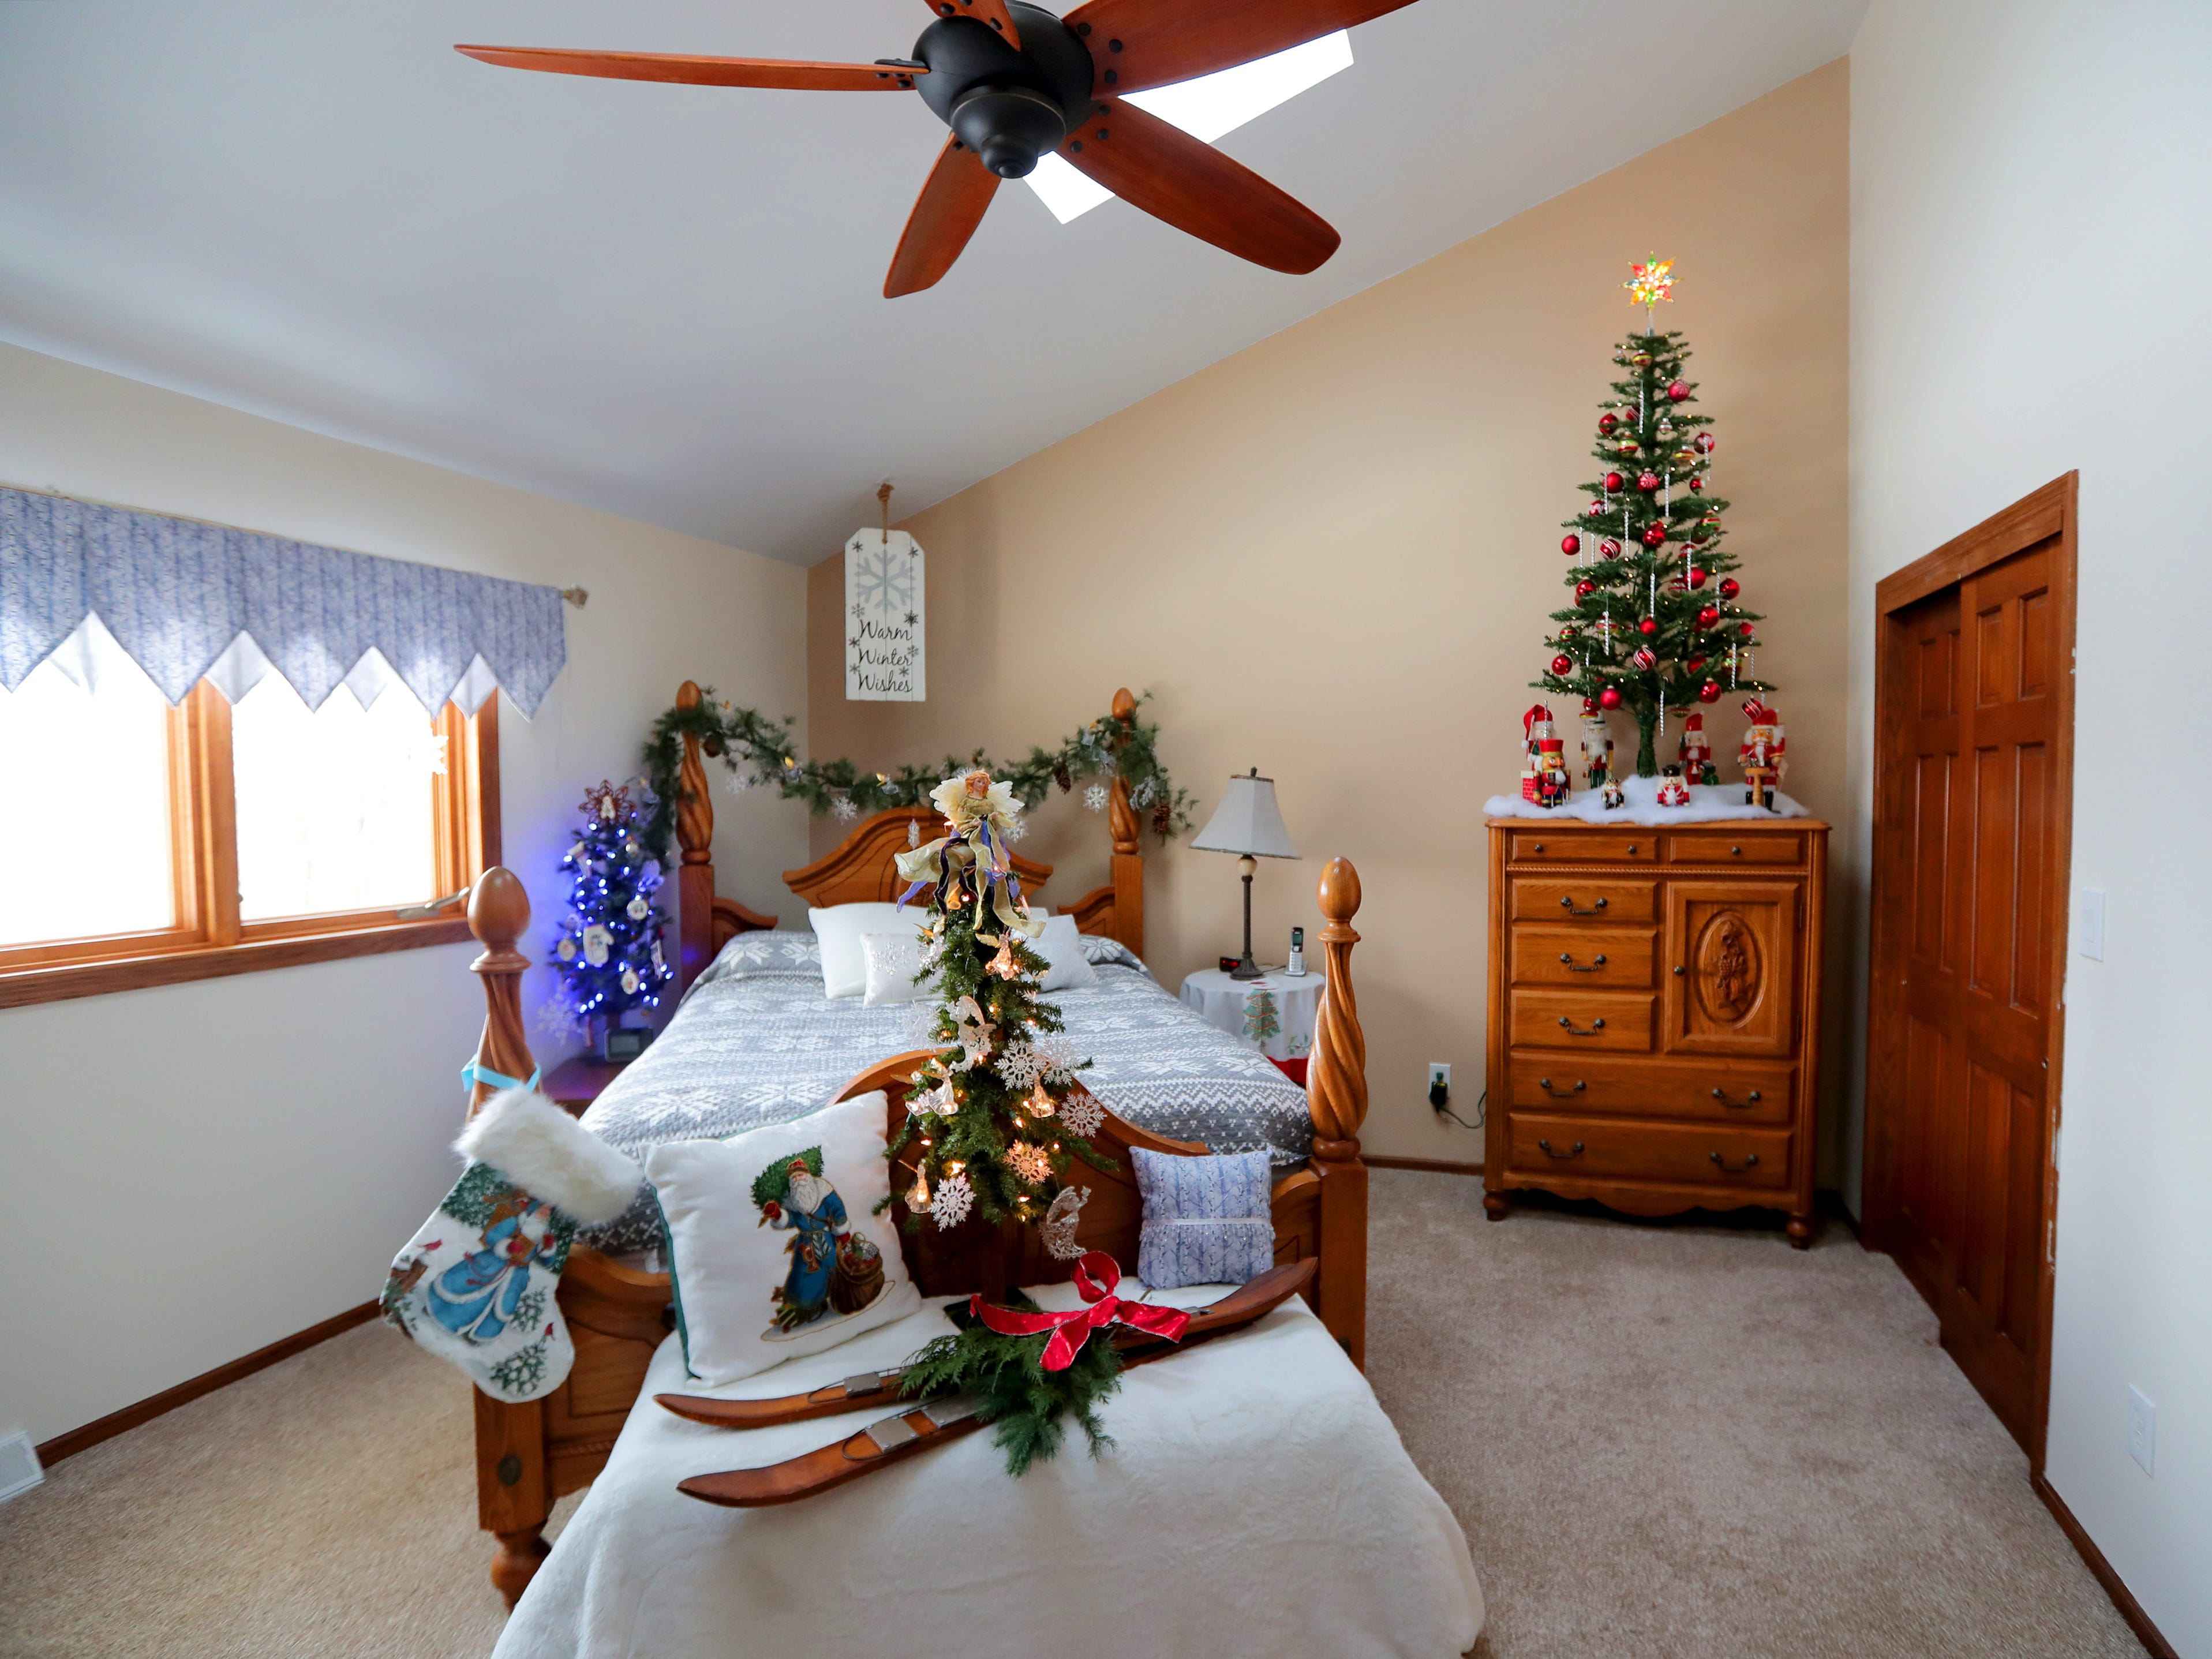 The master bedroom on the second floor is decked out in holiday decorations, including three small trees.